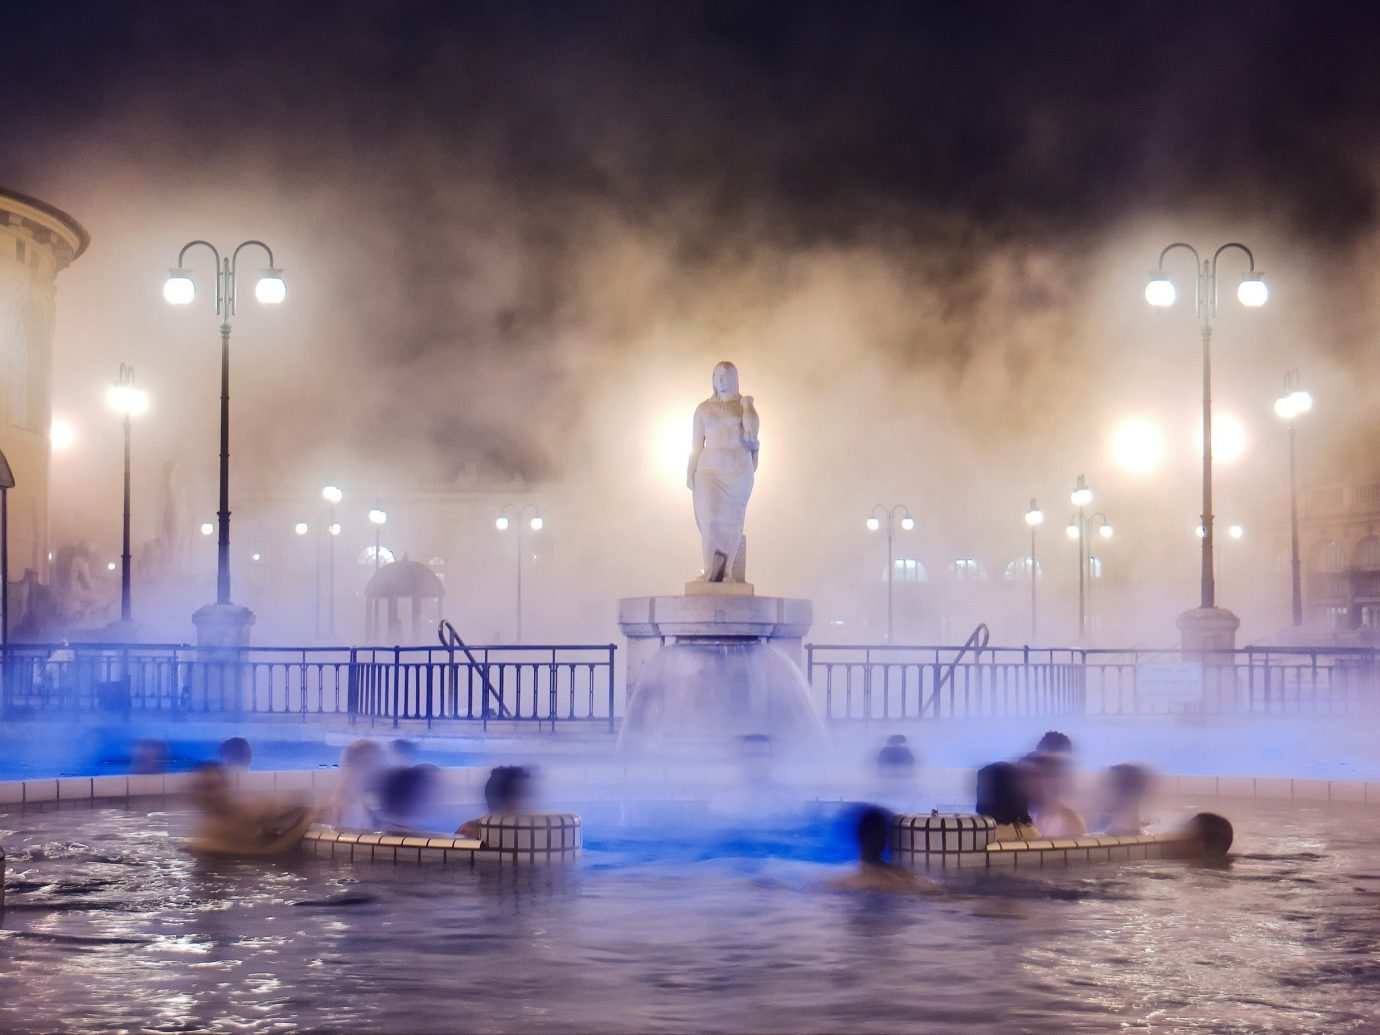 Style + Design fountain atmospheric phenomenon landmark reflection night water feature morning evening cityscape several